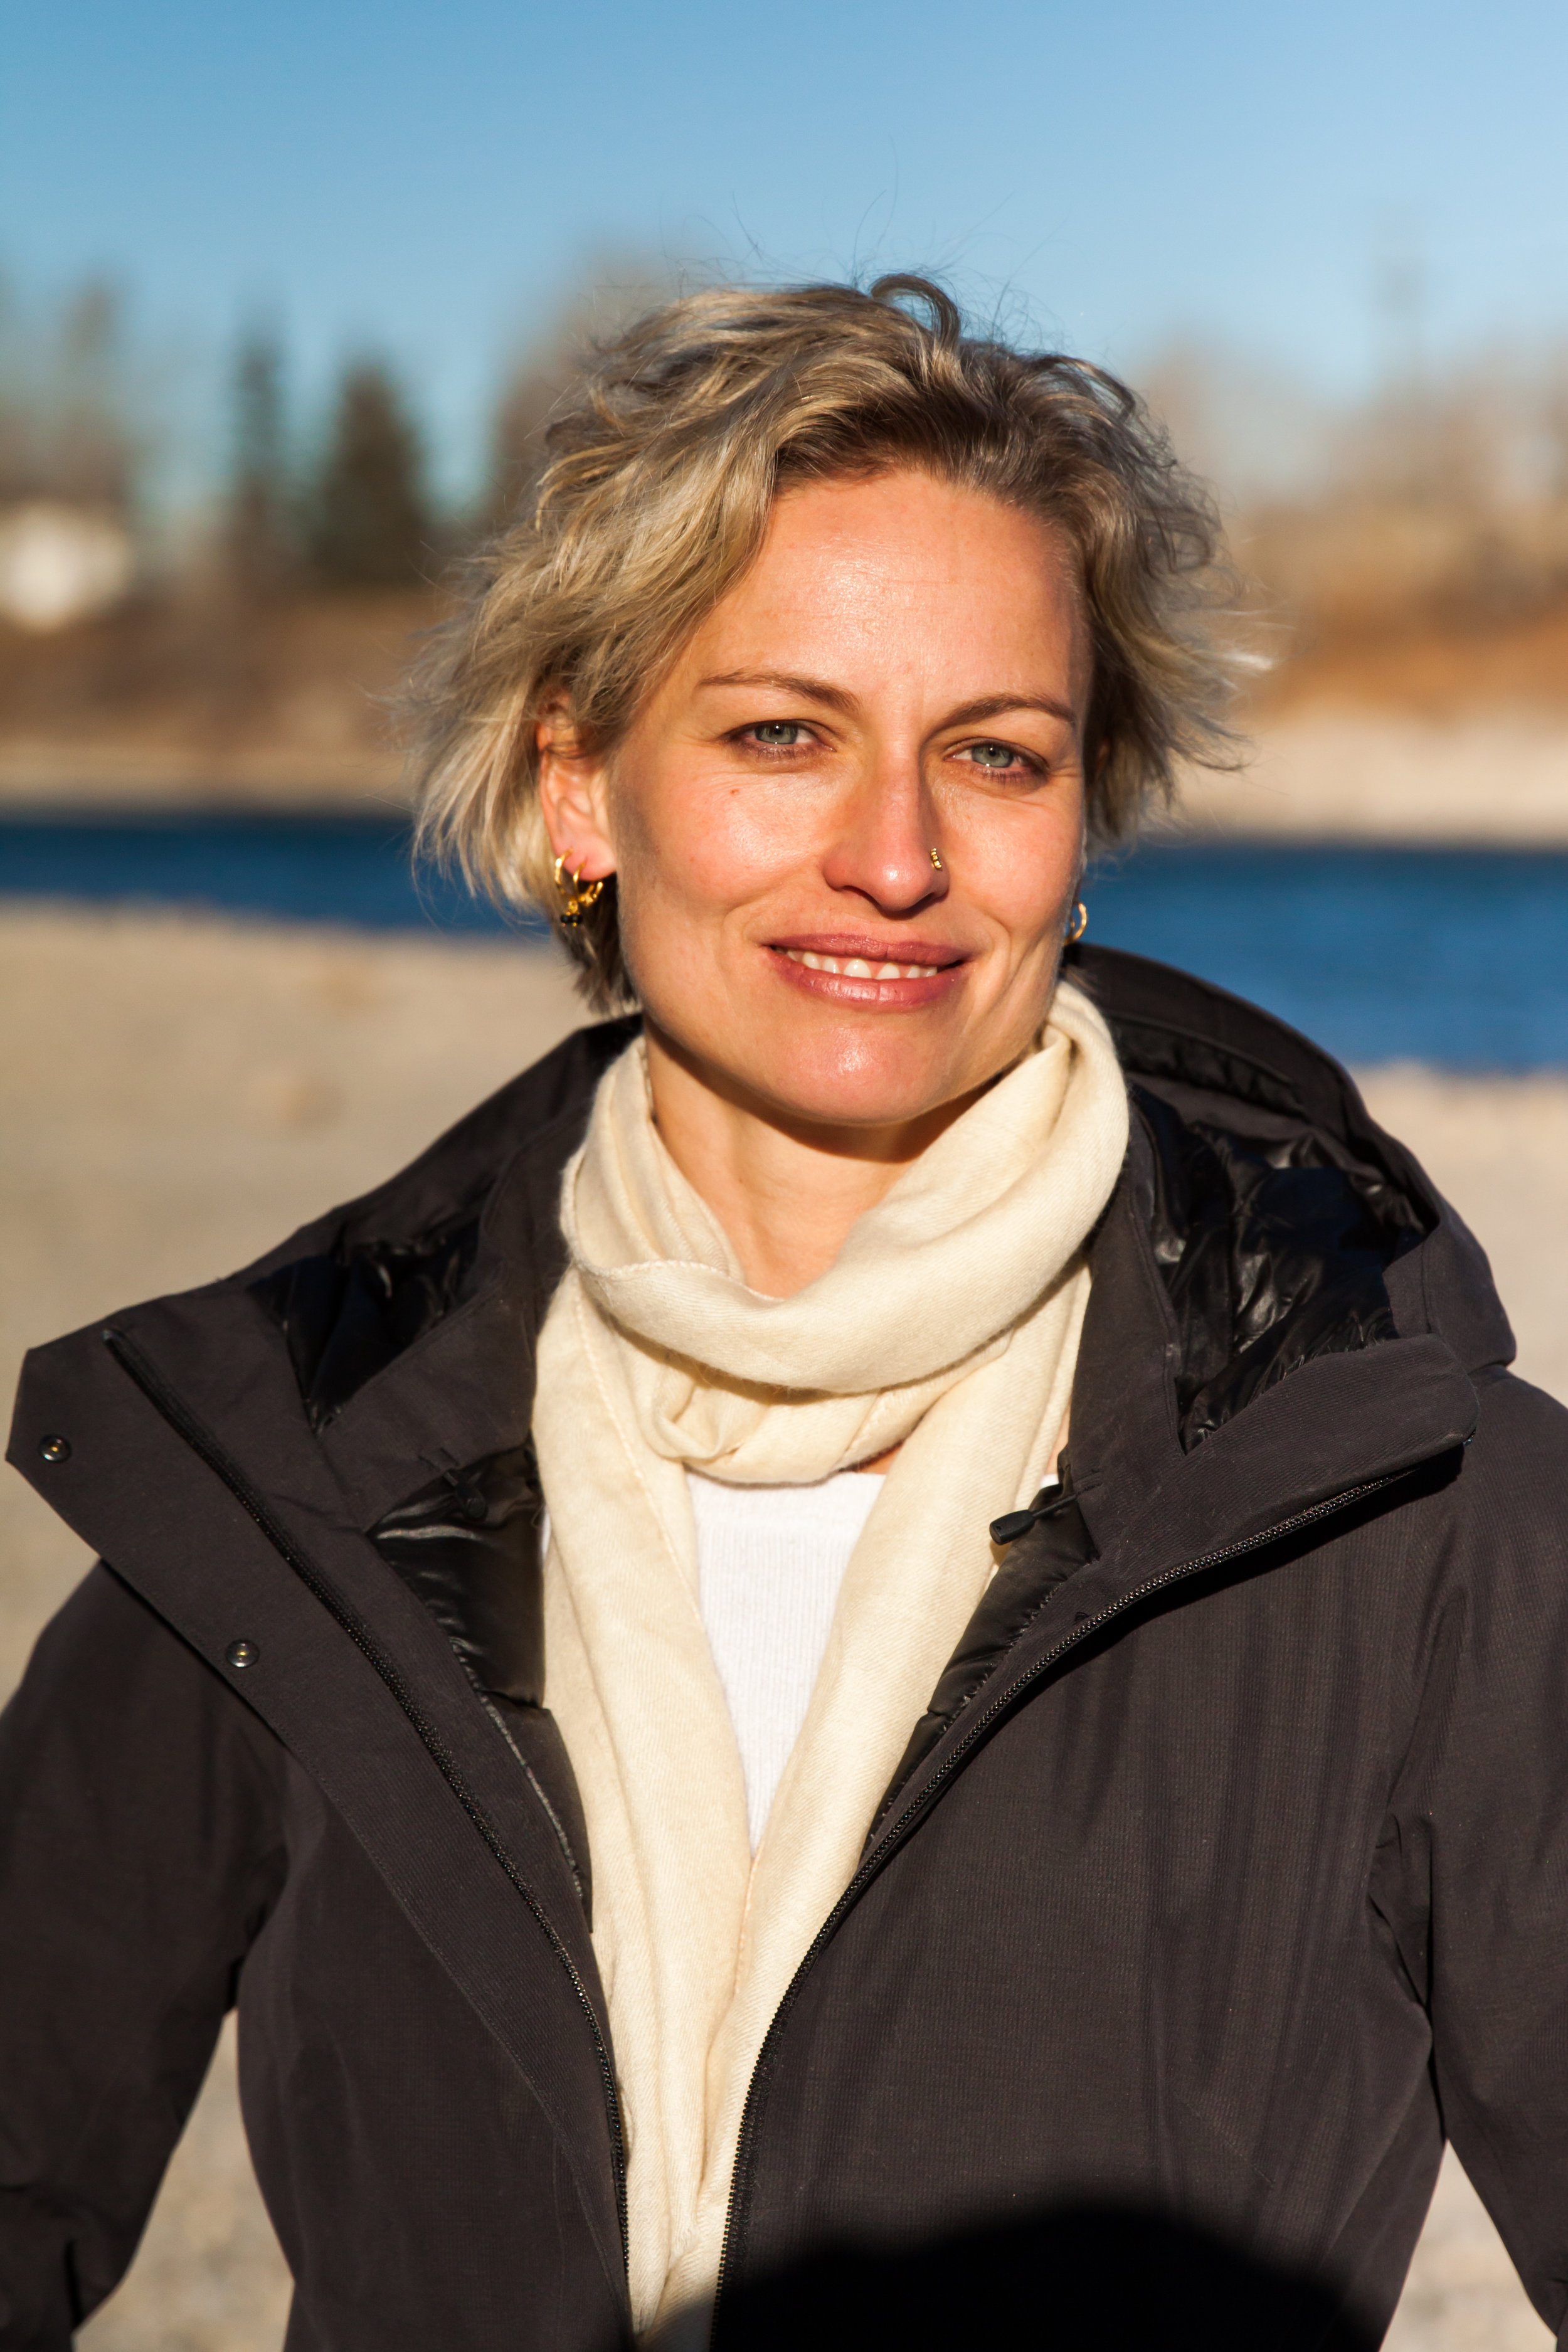 Harmony Slater is one of 3 Certified Ashtanga Yoga Teachers in Canada.  She welcomes students of all levels and abilities to her classes.  Come practice and feel the power of transmission through this Yoga Lineage.